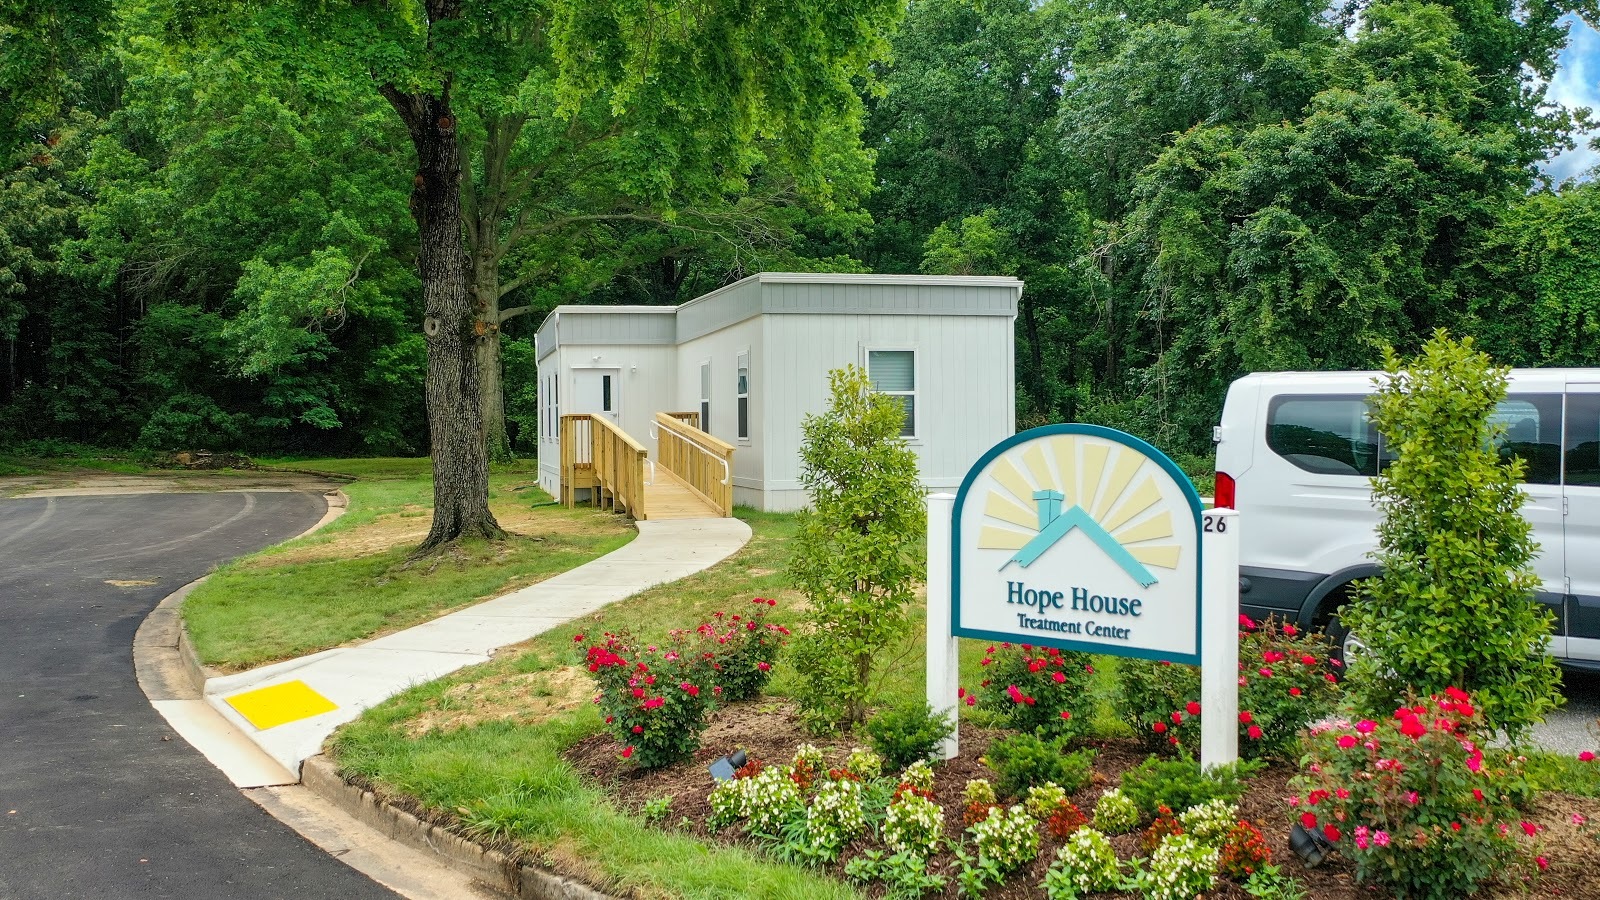 Hope House drug treatment center exterior